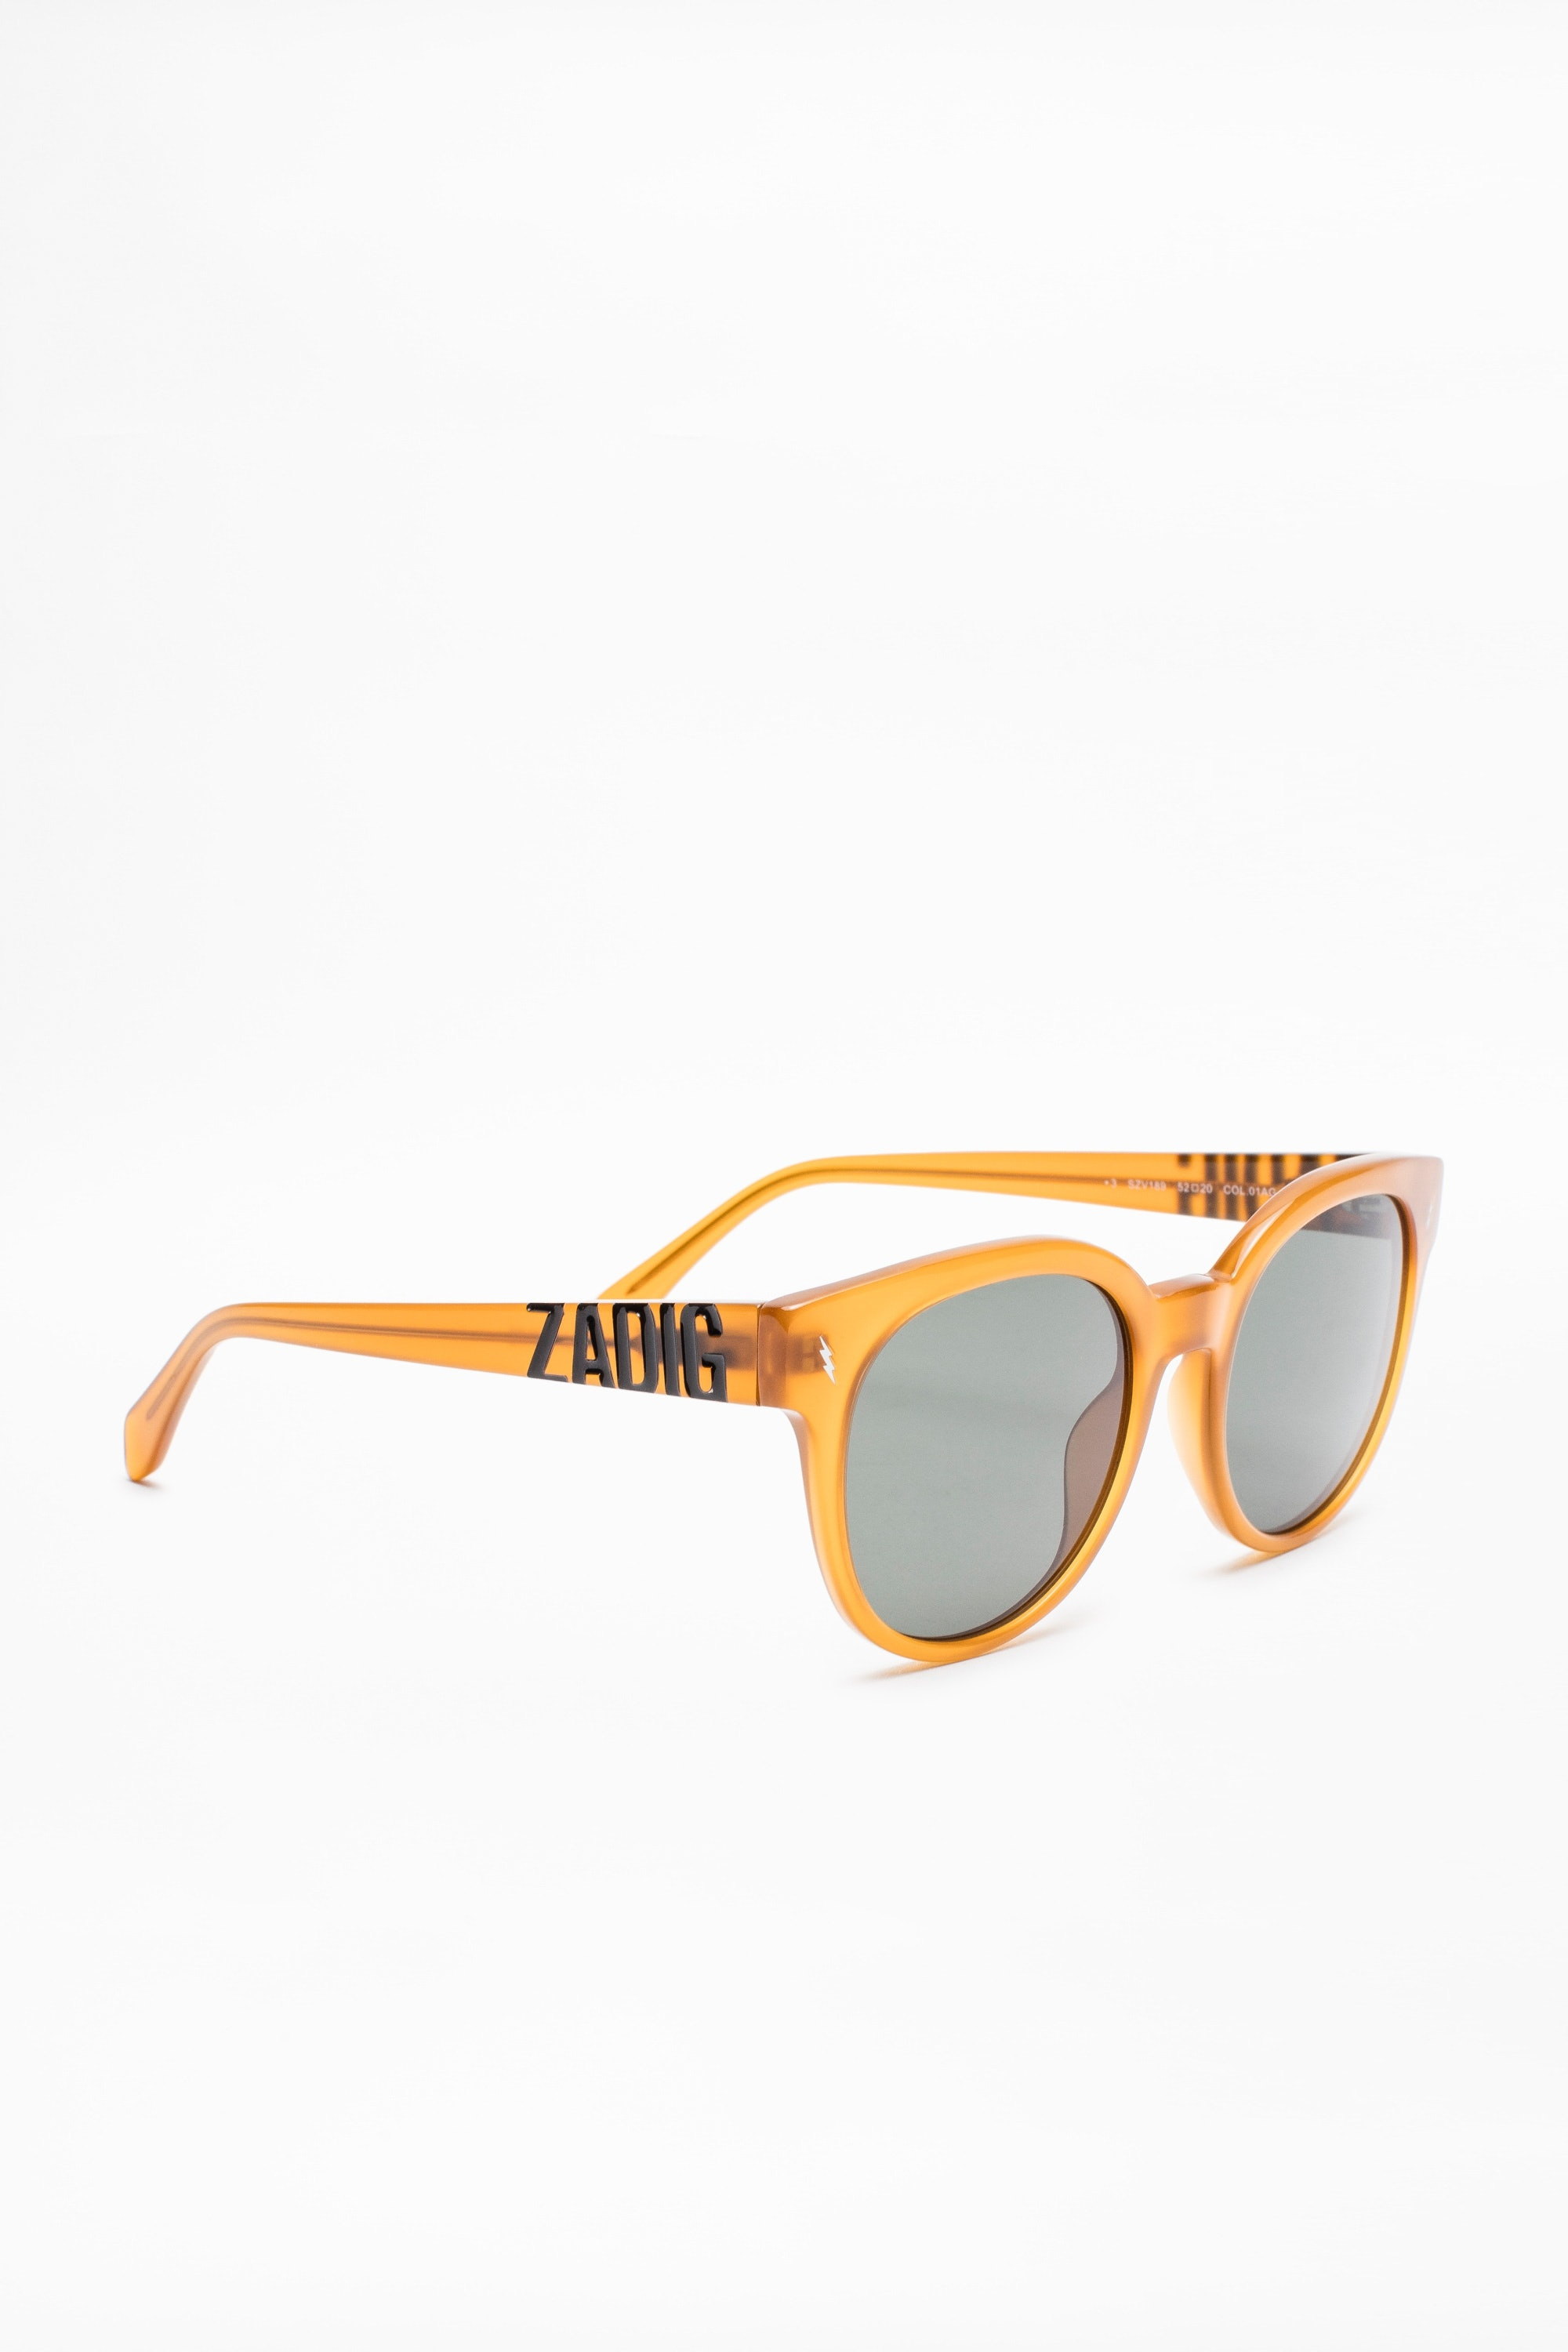 SZV189 Sunglasses